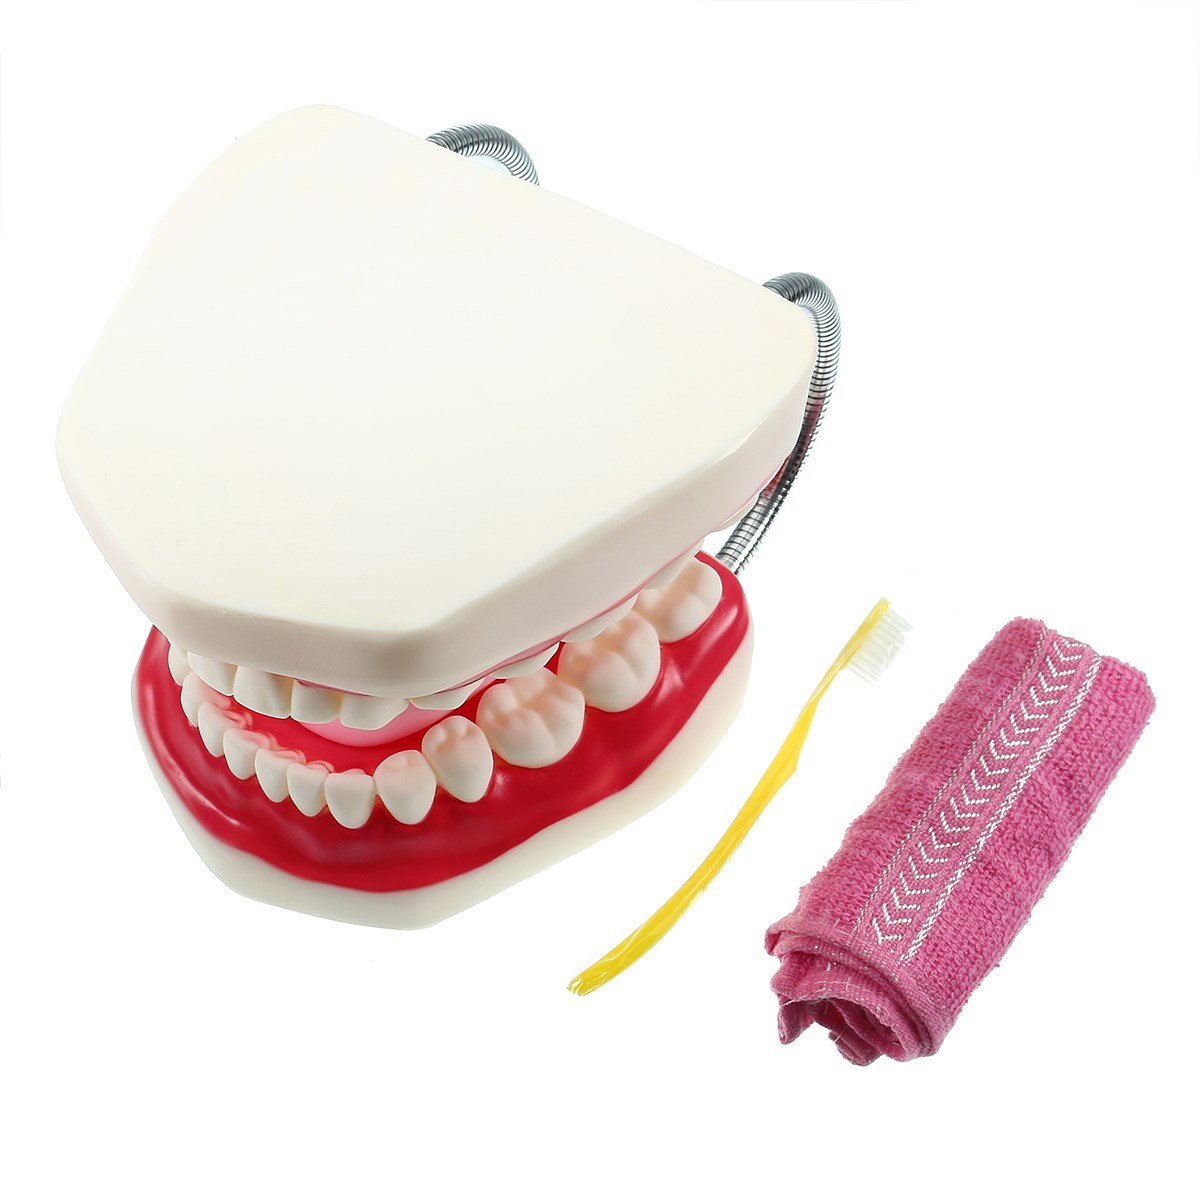 Large Dental Adult Teeth Model 6 Times Oral Models Tooth With Tongue For Kindergarten Child Early Teaching Study Health Care lower molar with one root model molar teeth model dental model